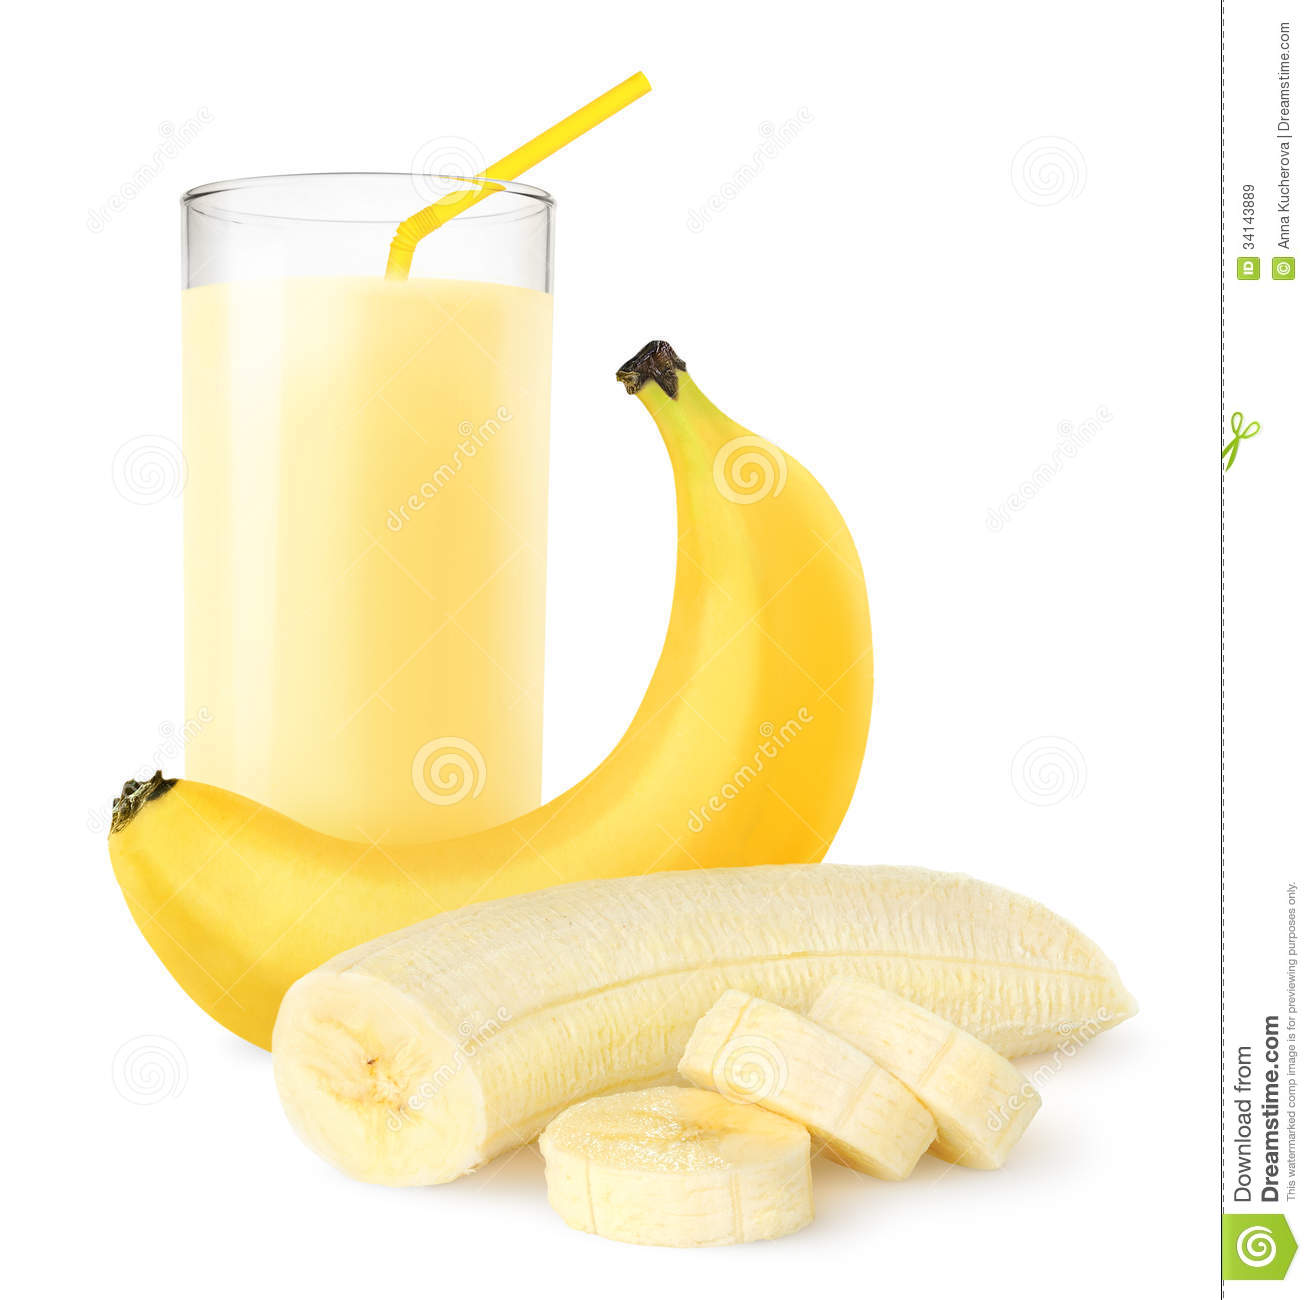 Royalty Free Stock Images Banana Shake Fresh Over White Background Image34143889 on cartoon smoothie